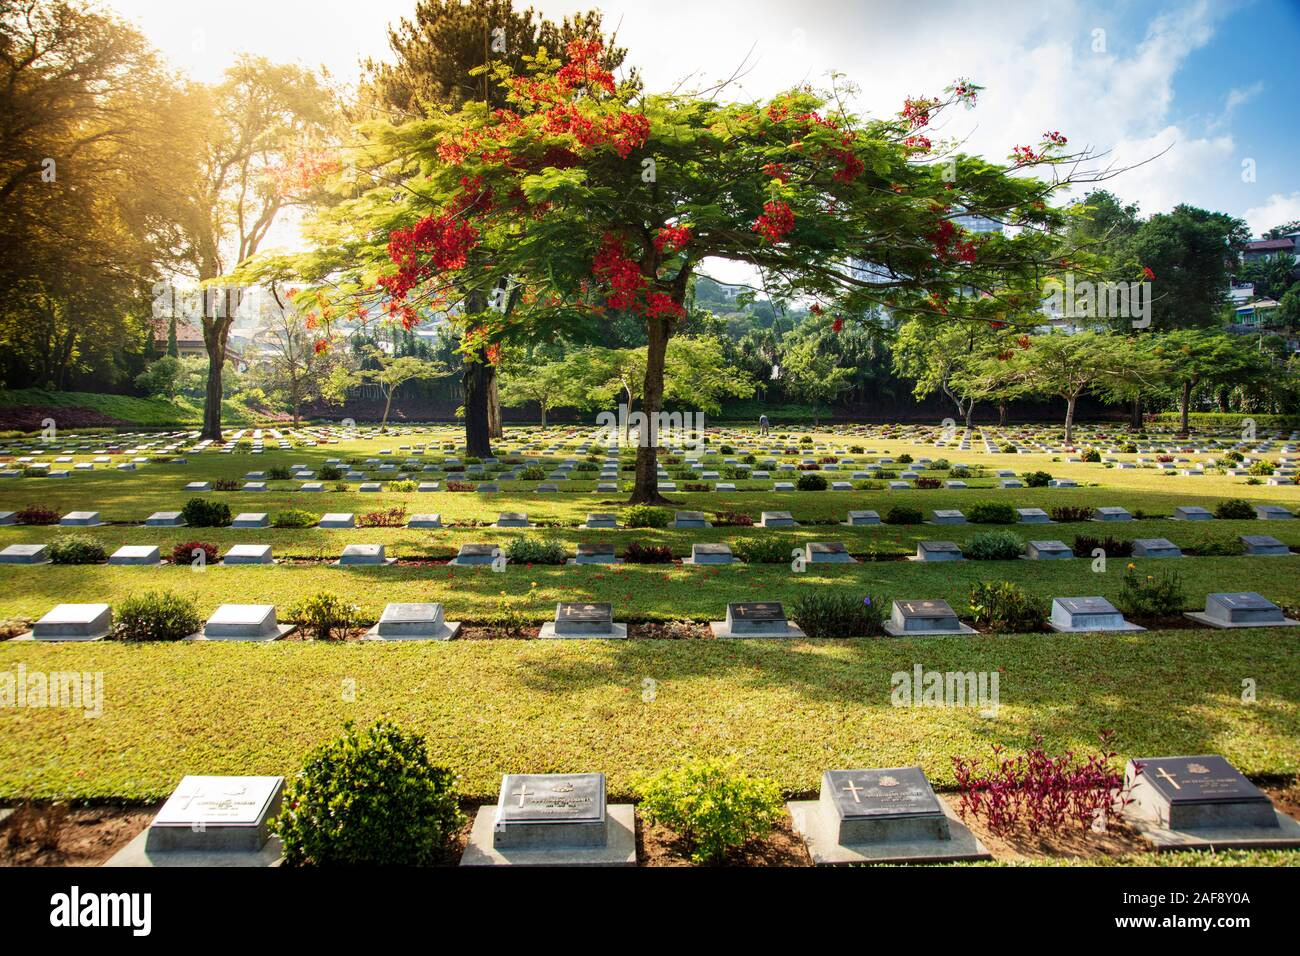 War cemetery for Anzac, British and Dutch soldiers killed in World War Two, Ambon, Indonesia Stock Photo